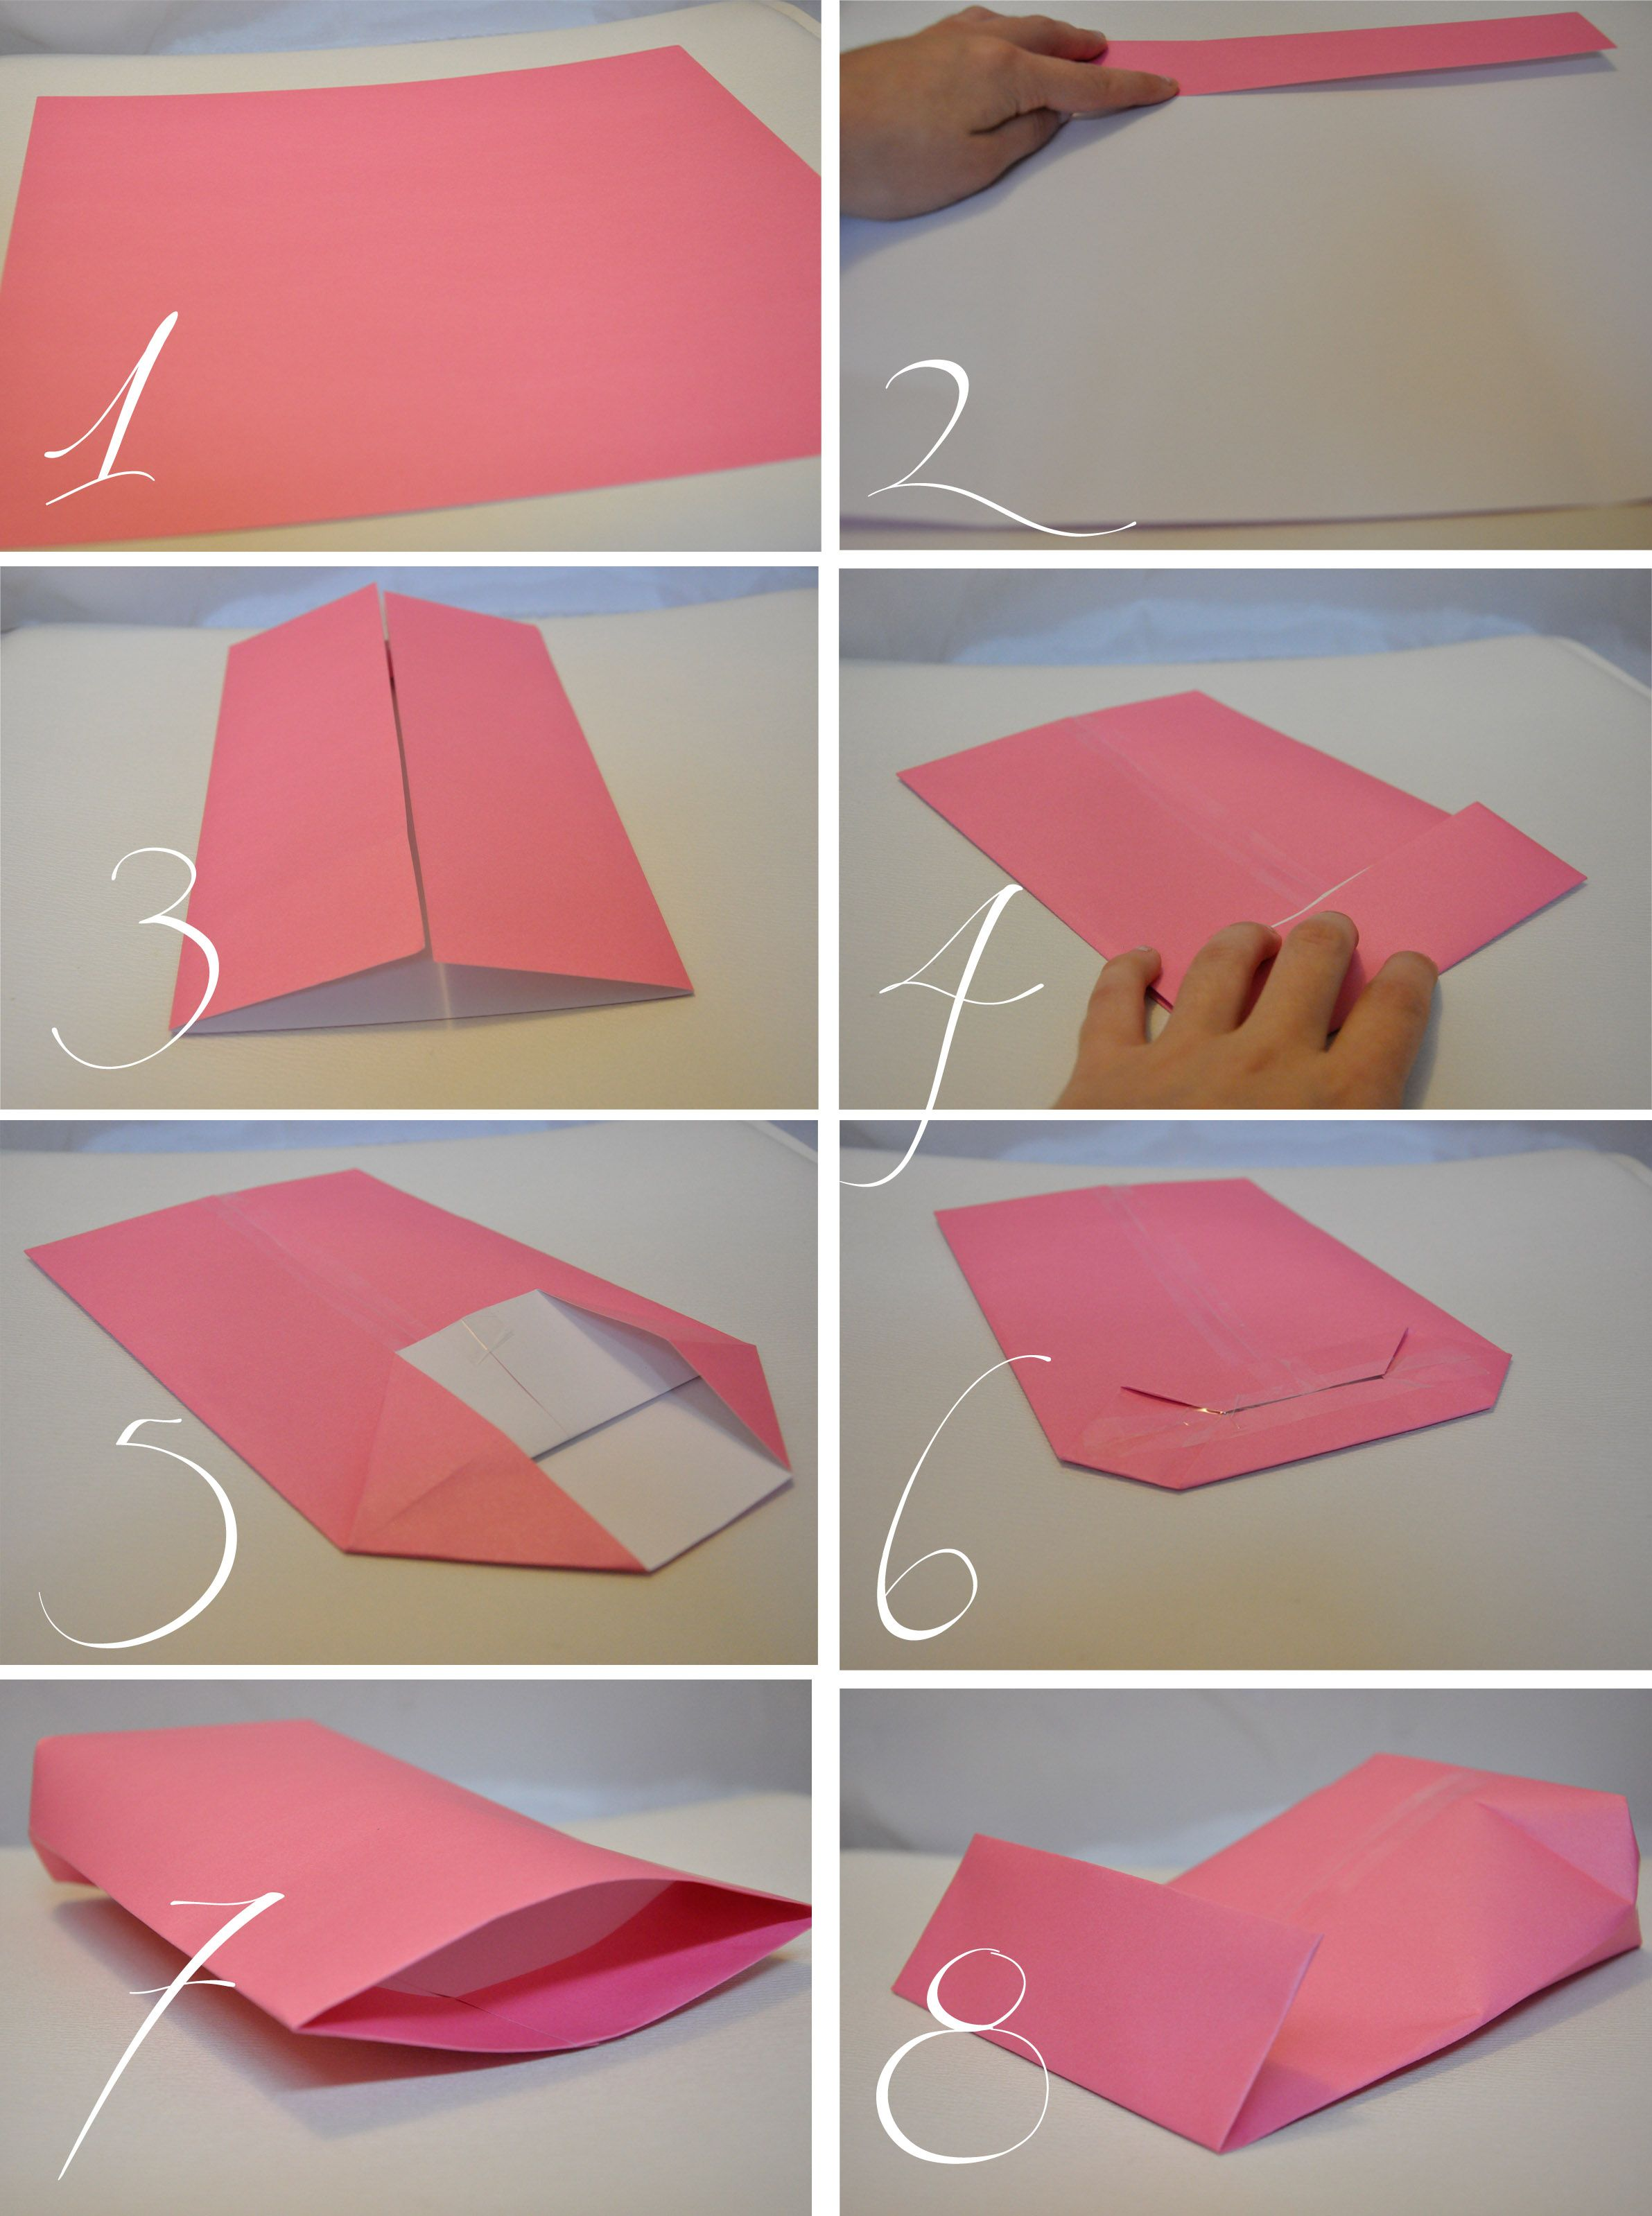 diy gift bag - Google Search | Craft Ideas | Pinterest | Bag, Gift ...